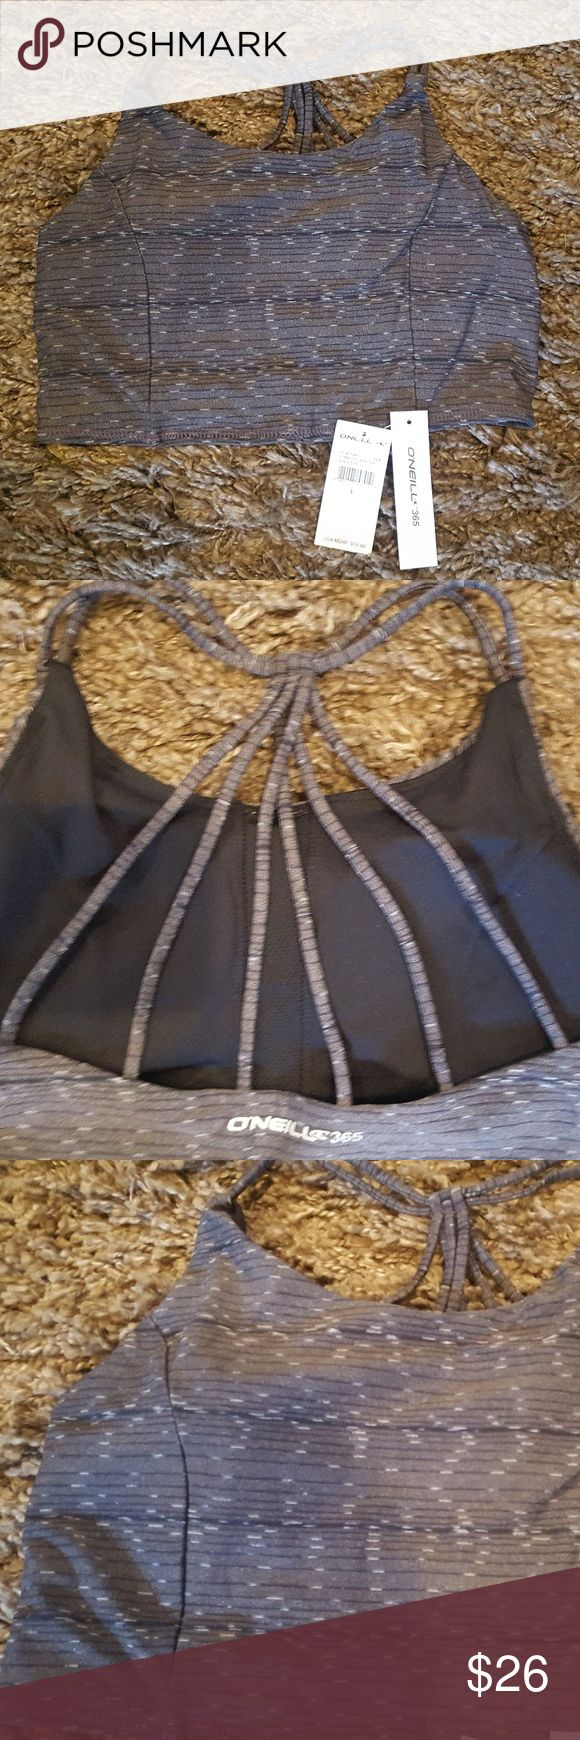 O'Neill Strappy Sports Bra O'Neill Marled Gray Strappy Sports Bra with Medium Support Very comfy pullover style  Size Large NWT O'Neill Intimates & Sleepwear Bras